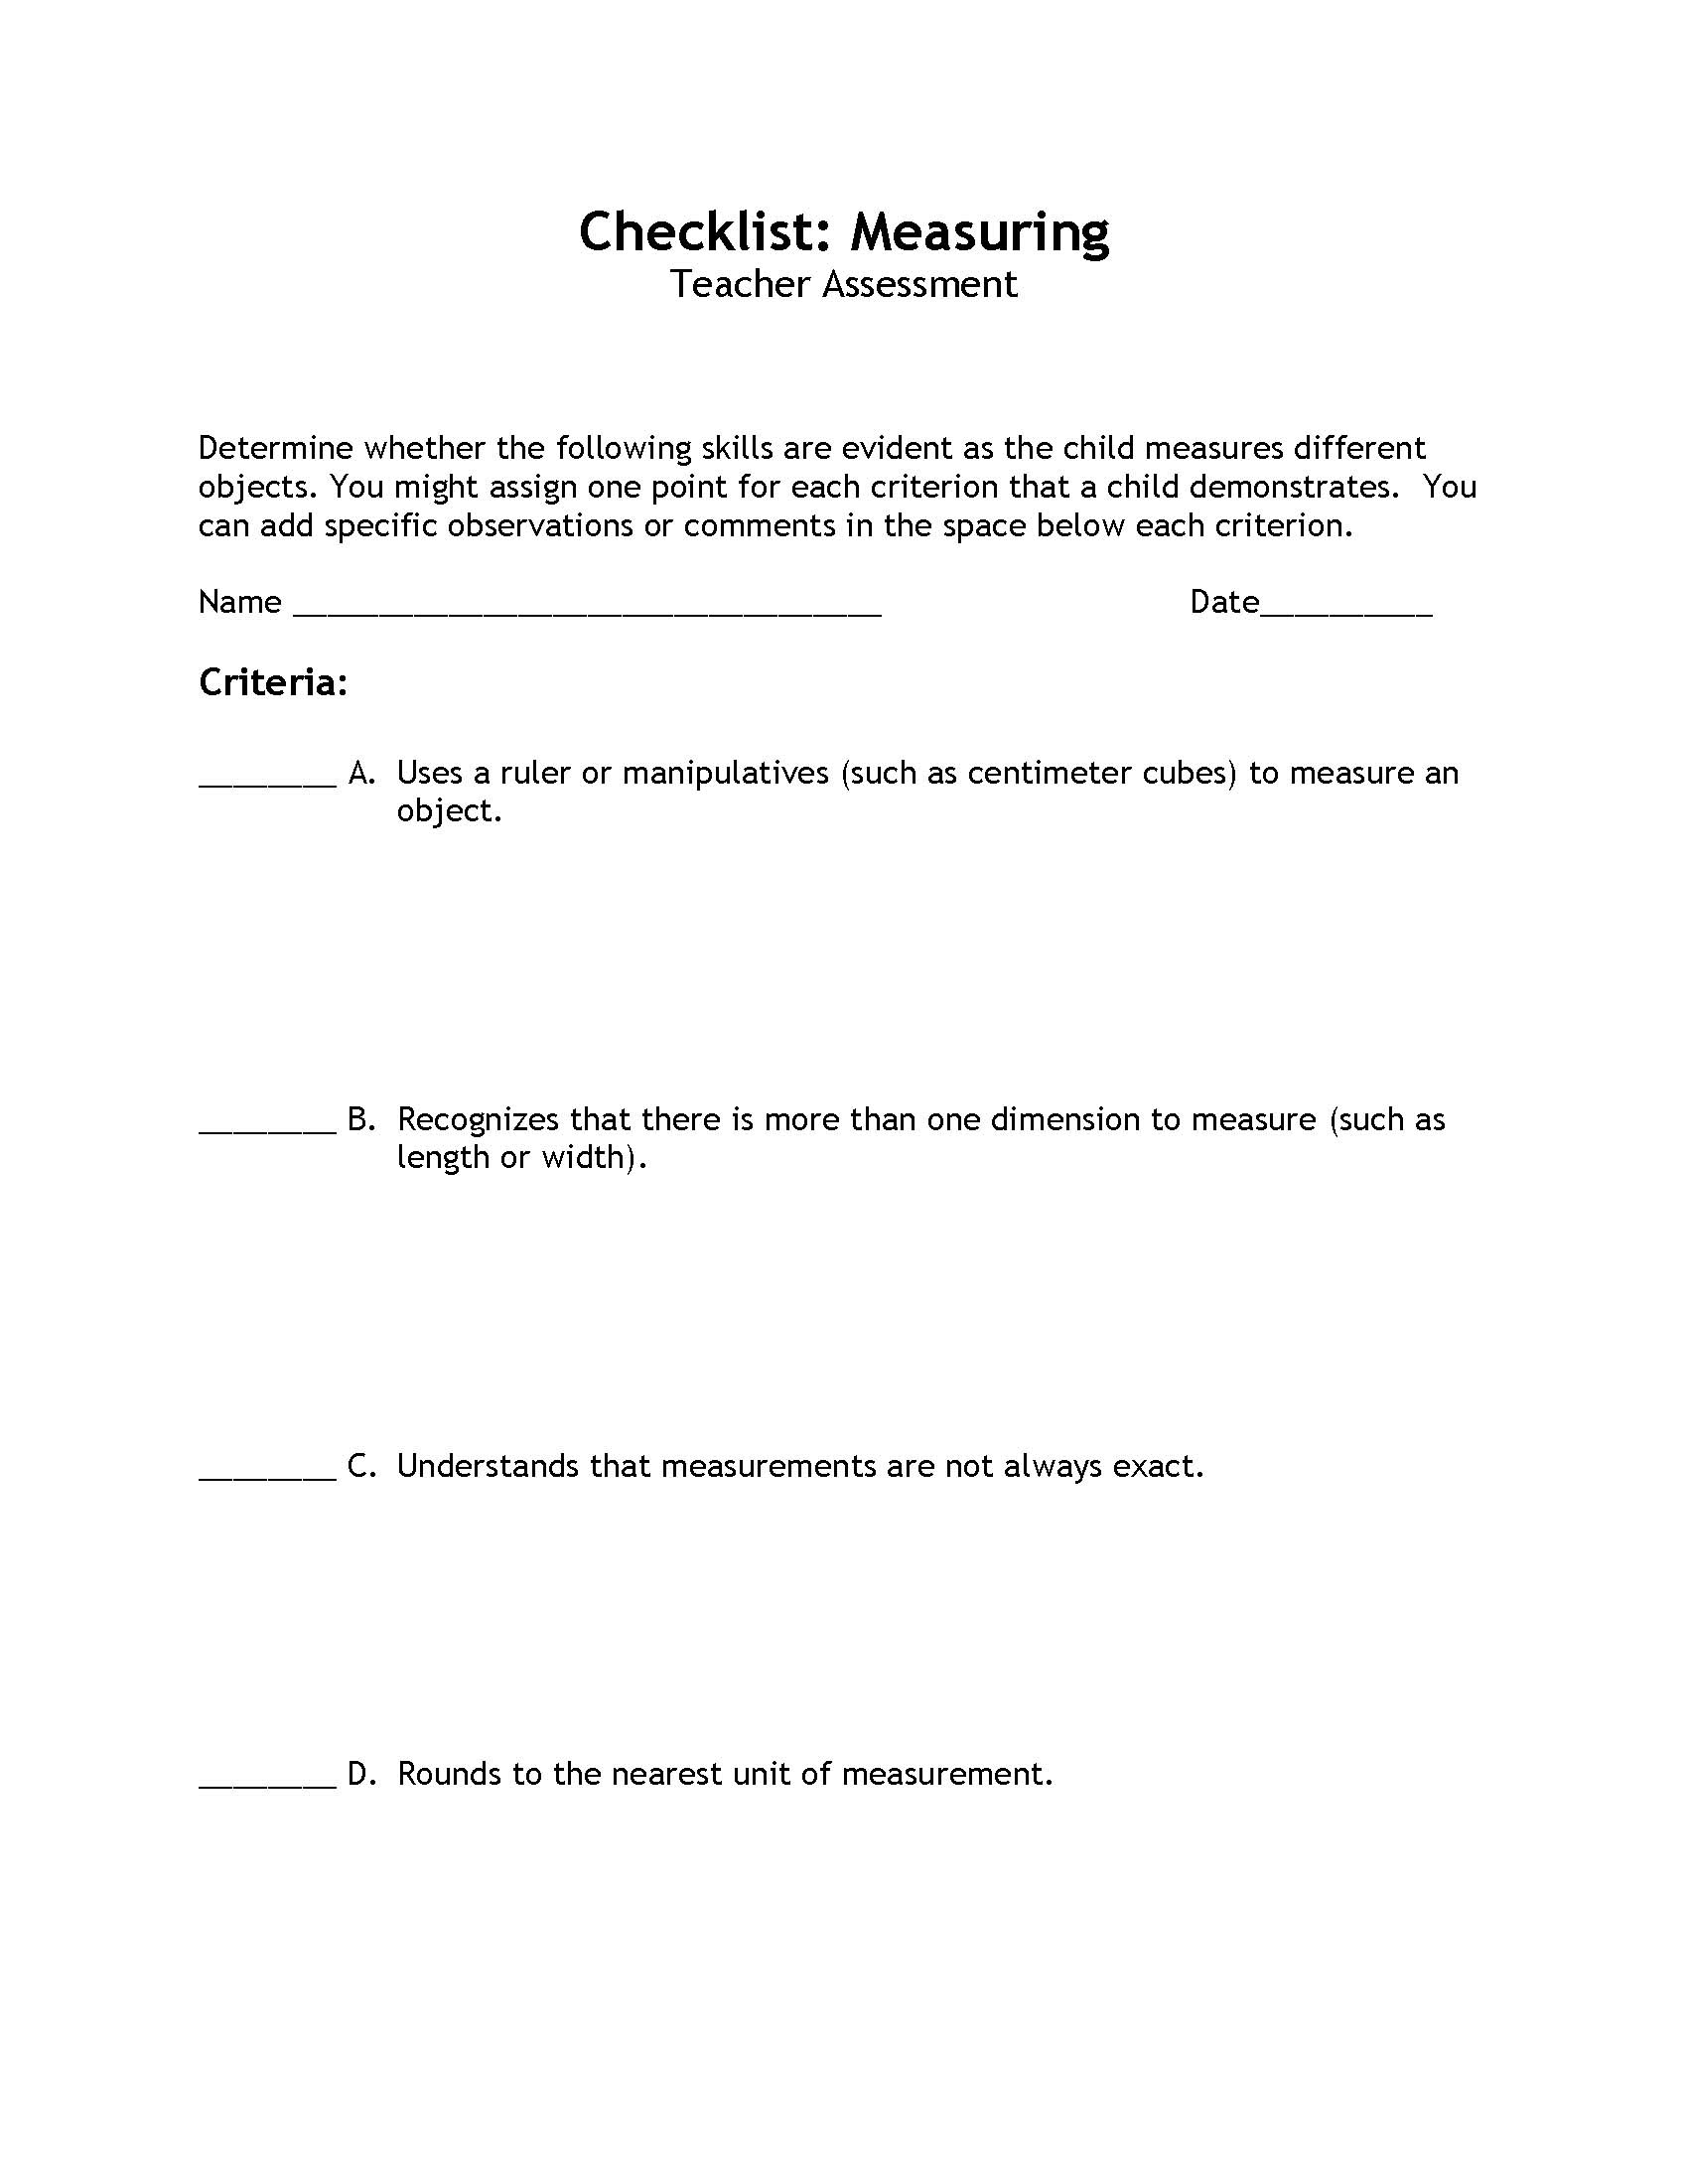 Science and Children Online Connections – Engineering Design Process Worksheet